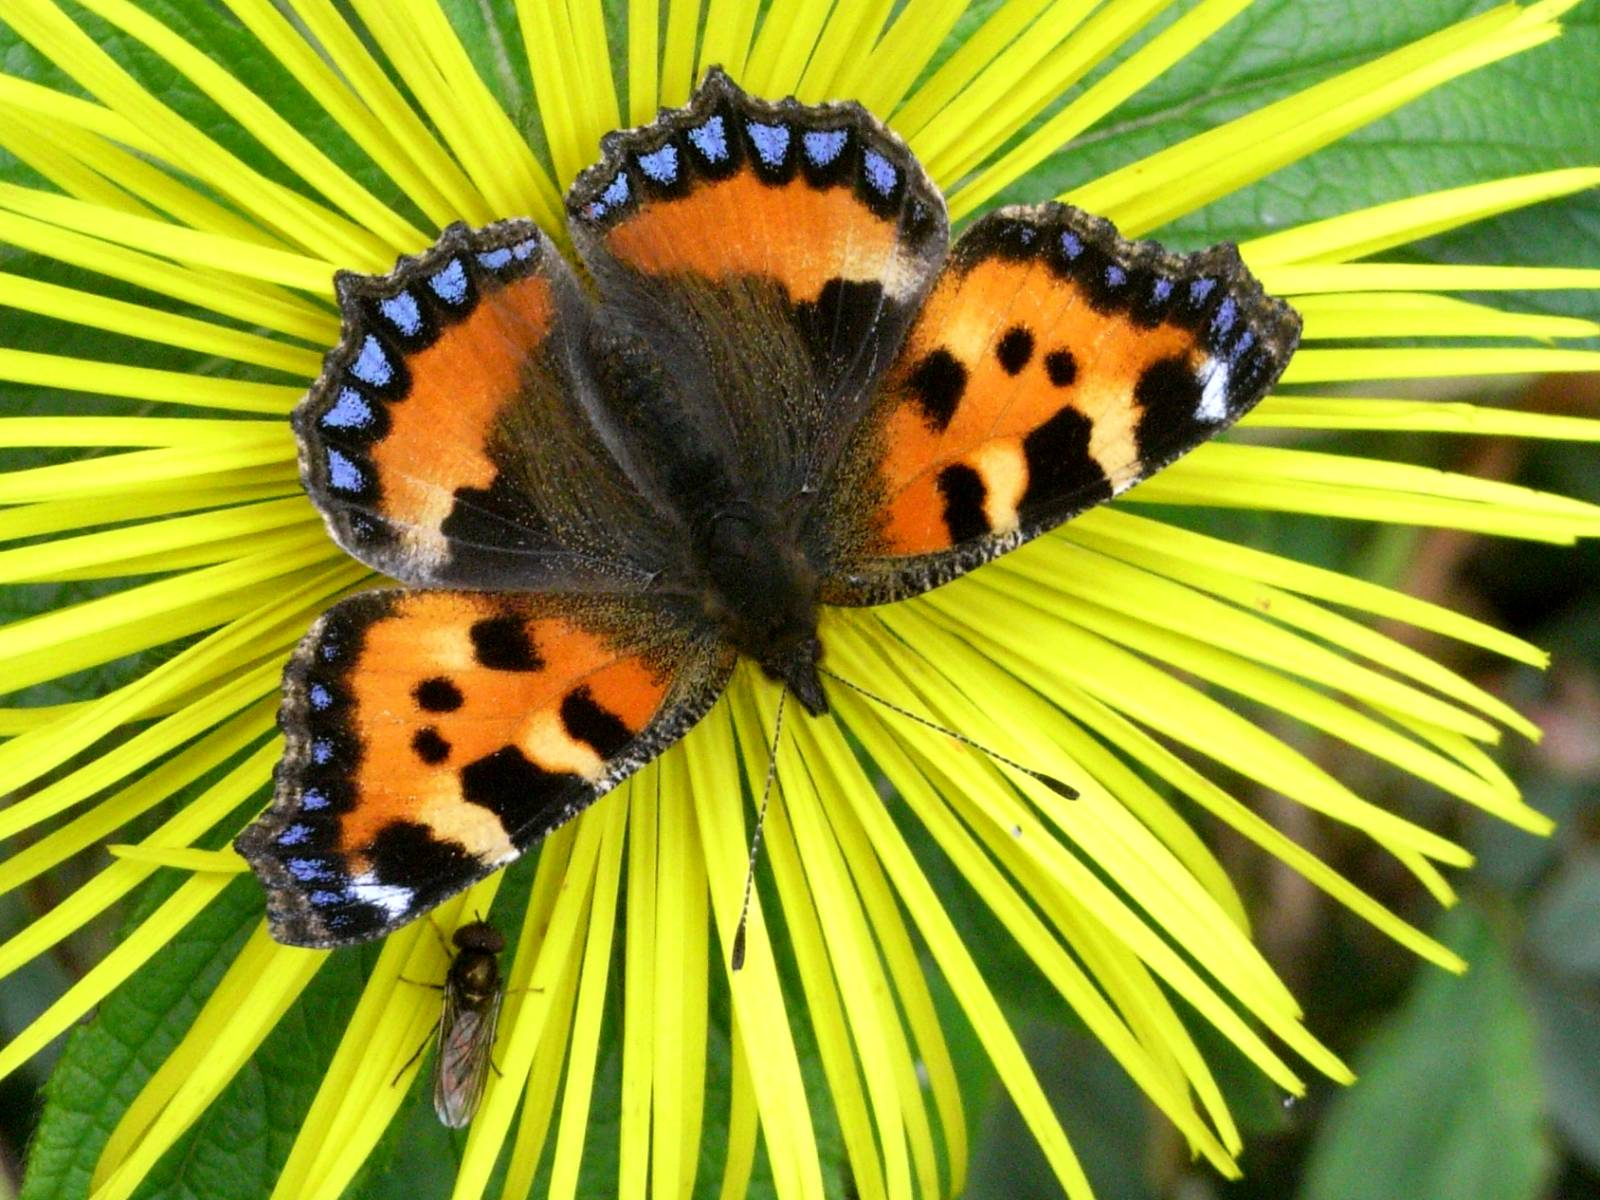 Small Tortoiseshell Butterfly Wallpapers, Beautiful Butterfly Wallpapers, Butterfly Wallpapers, Butterfly Pictures